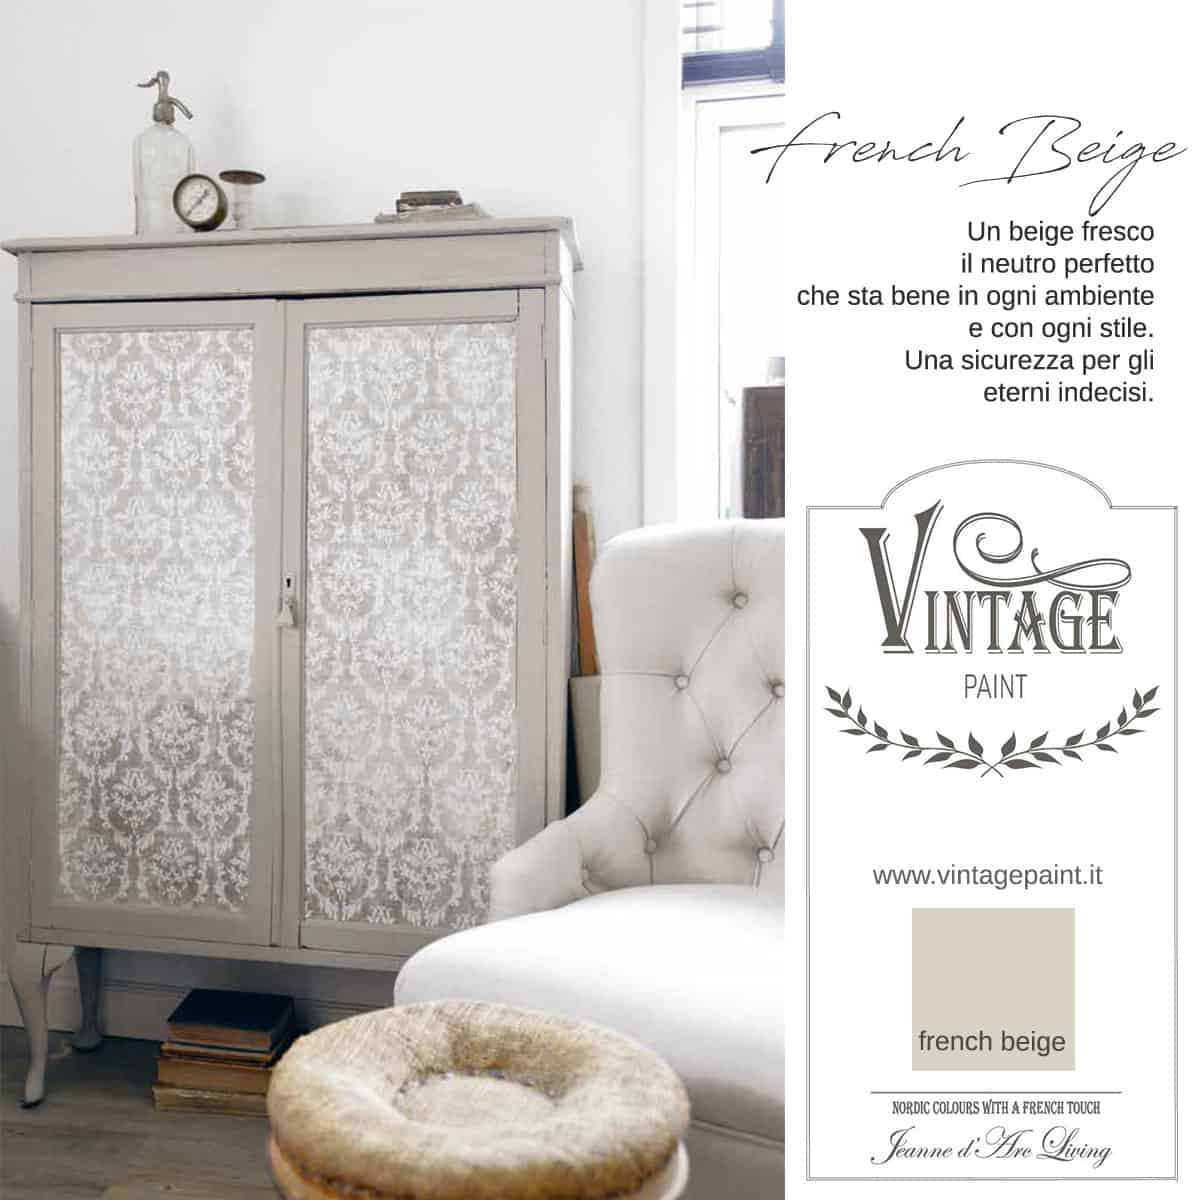 french beige vintage chalk paint vernici shabby chic autentico look gesso